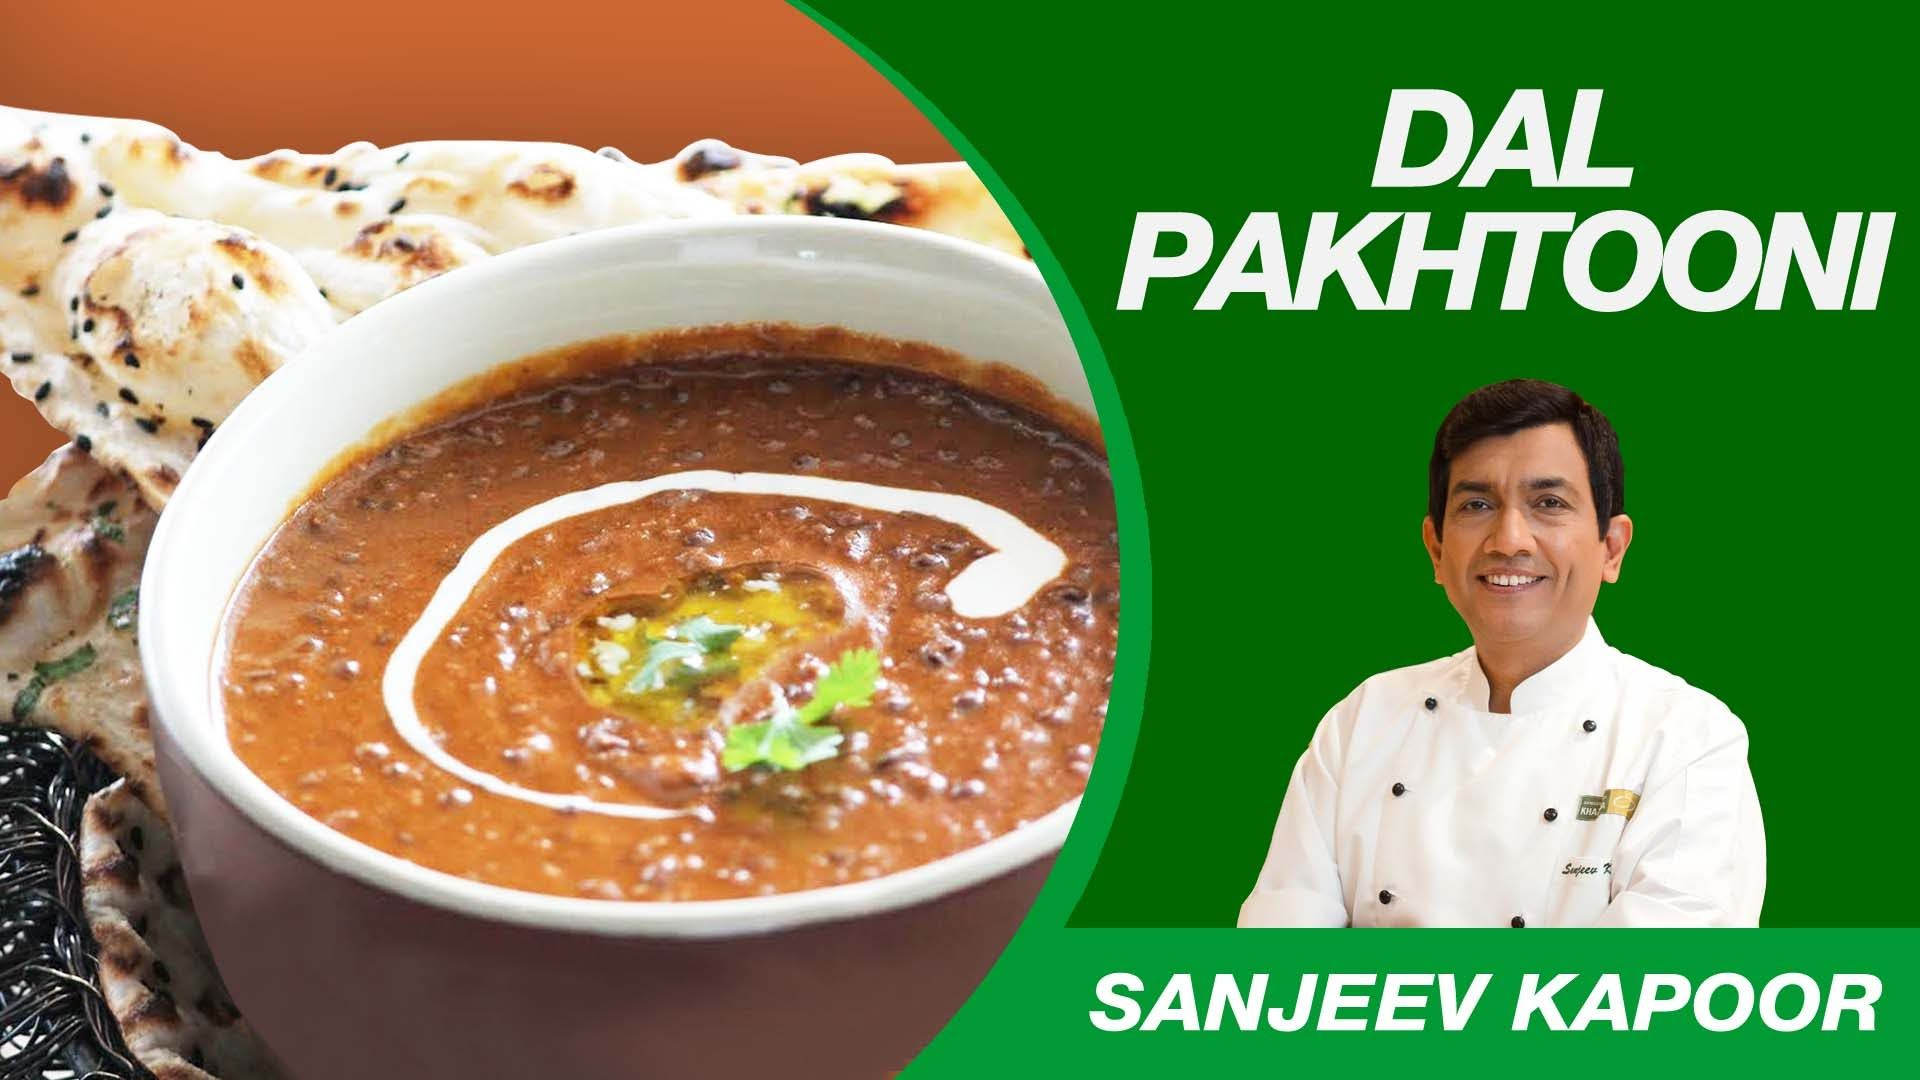 Dal makhani recipe by sanjeev kapoor best dal recipes youtube food dal makhani recipe by sanjeev kapoor forumfinder Choice Image